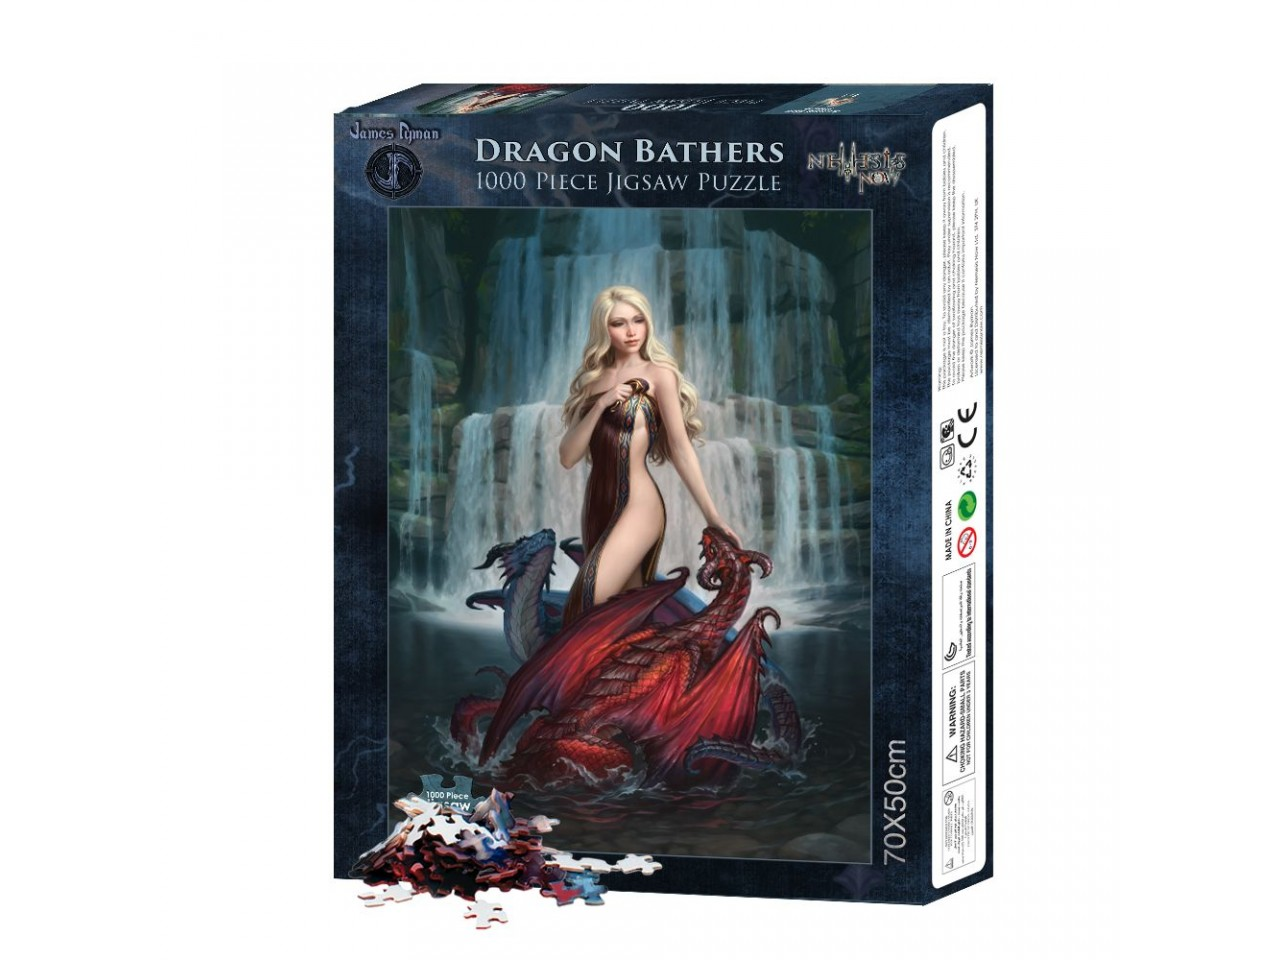 Dragon Bathers Jigsaw Puzzle